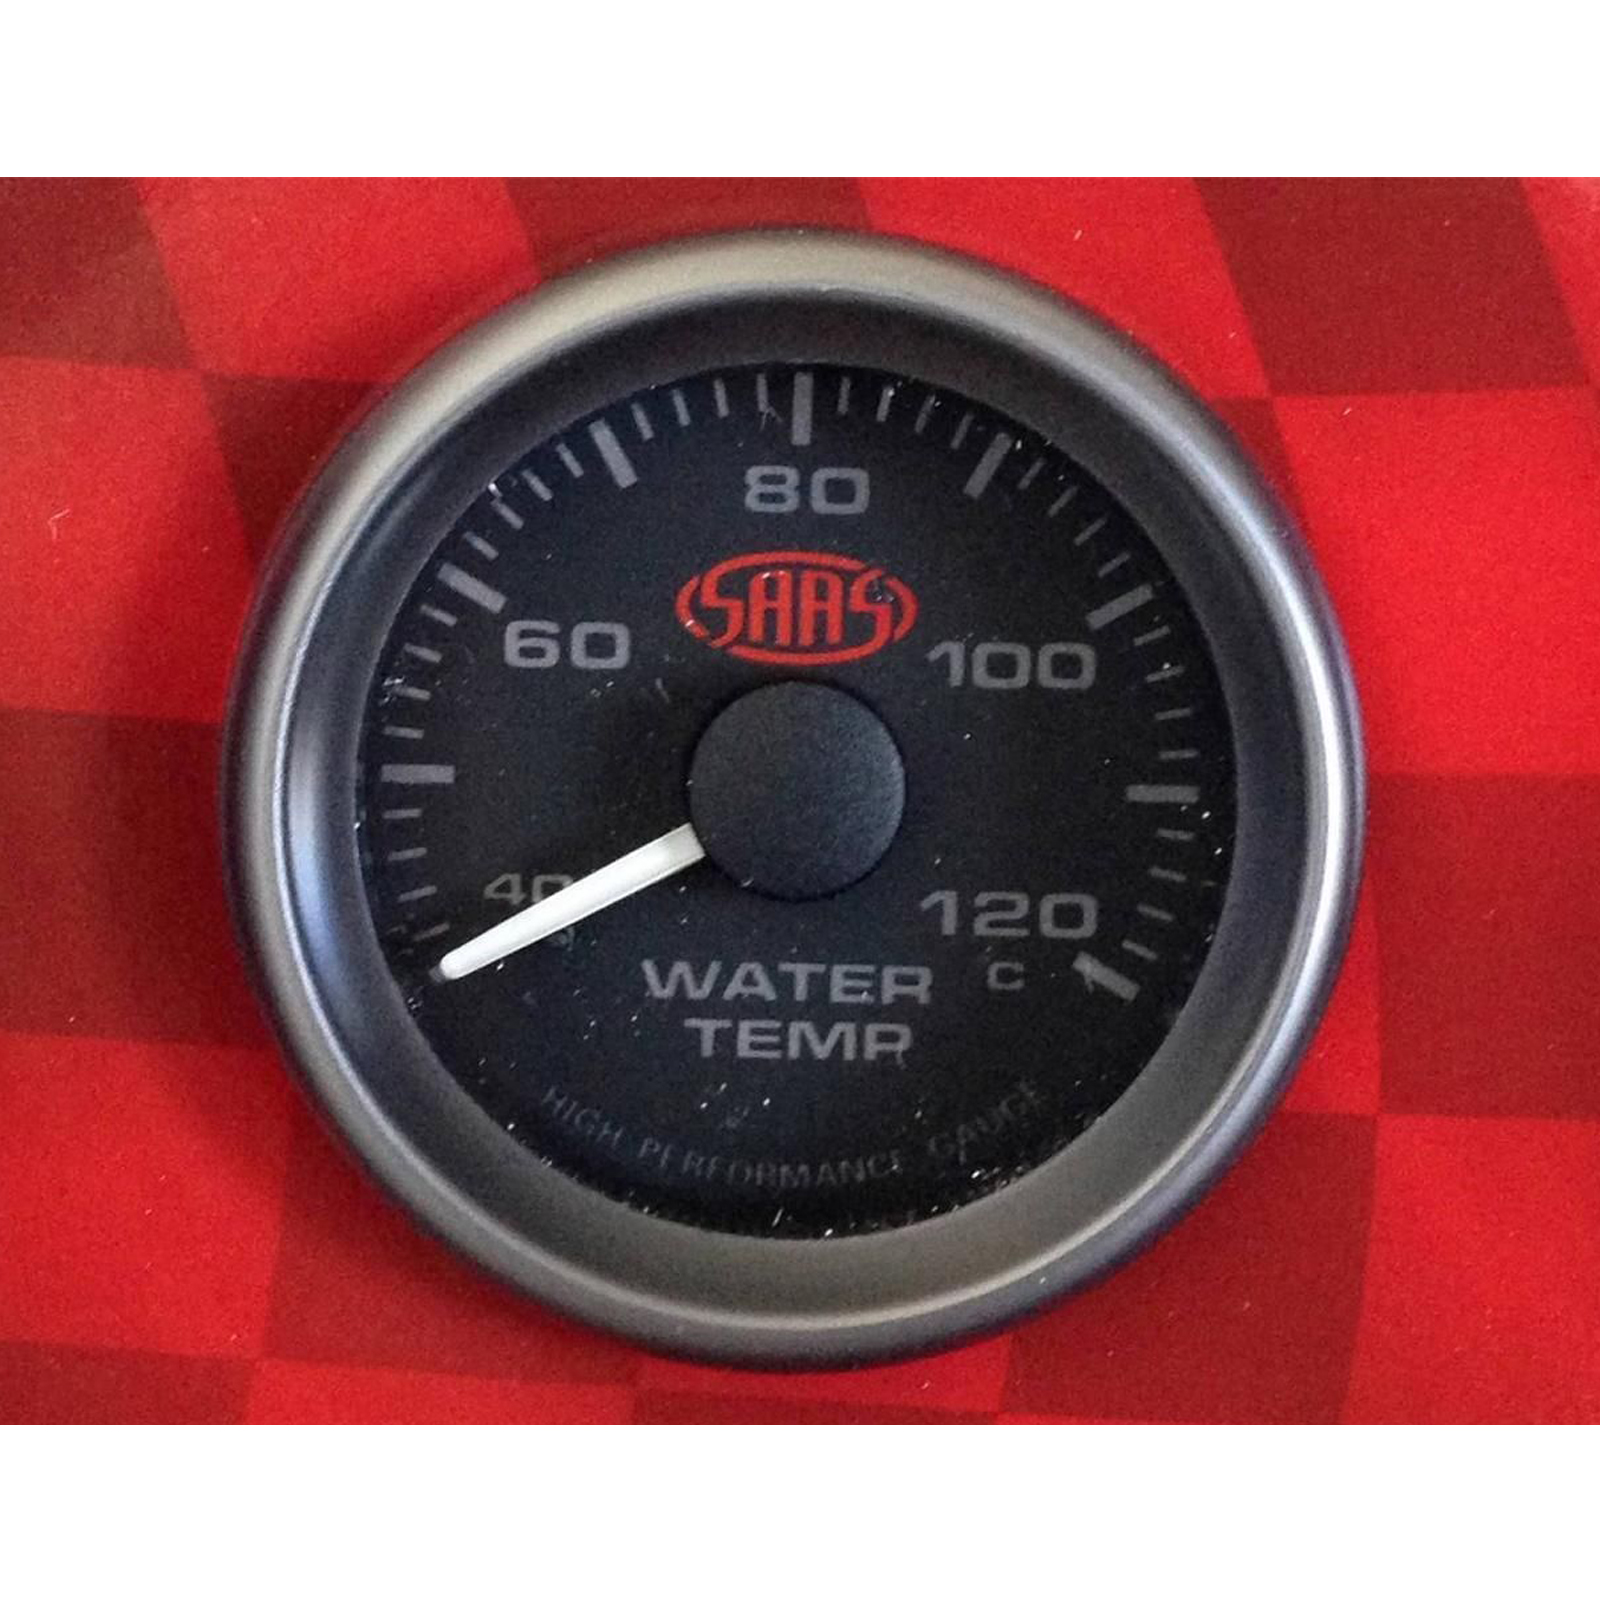 saas water temp gauge wiring diagram land rover discovery 1 40 120 degrees temperature black